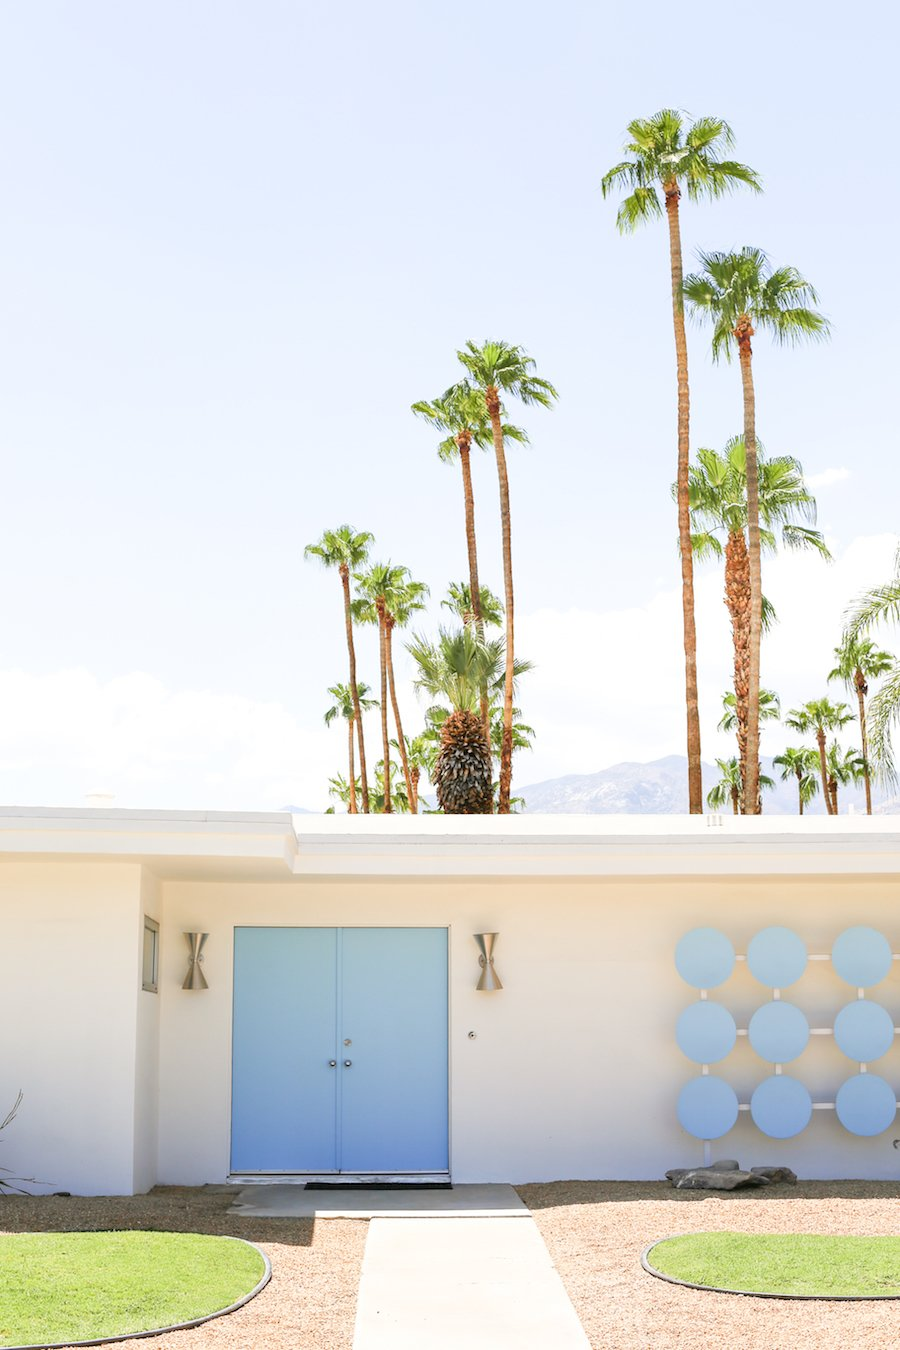 Take a Palm Springs Door Tour to see all the bright & colorful midcentury modern front doors, Instagram Photos, Insta-worthy, Driving Tour, Architecture Tour, Weekend Trip, Palm Springs Guide, Travel Guide, What to do in Palm Springs, Walking Door, Photo Tour, That Pink Door Address, Free Printable Map, Salty Canary